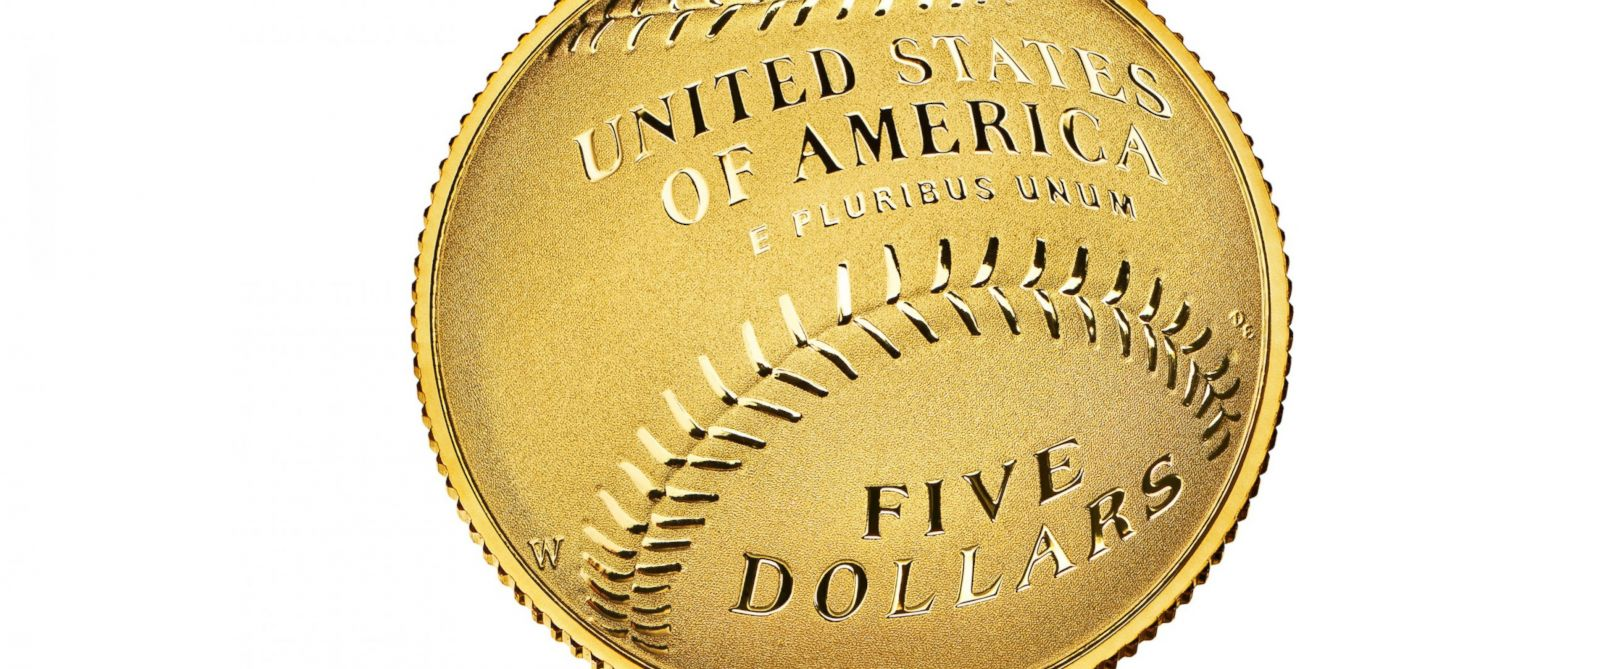 PHOTO: This undated photo released by the U.S. Mint shows one side of the gold $5 National Baseball Hall of Fame coin.